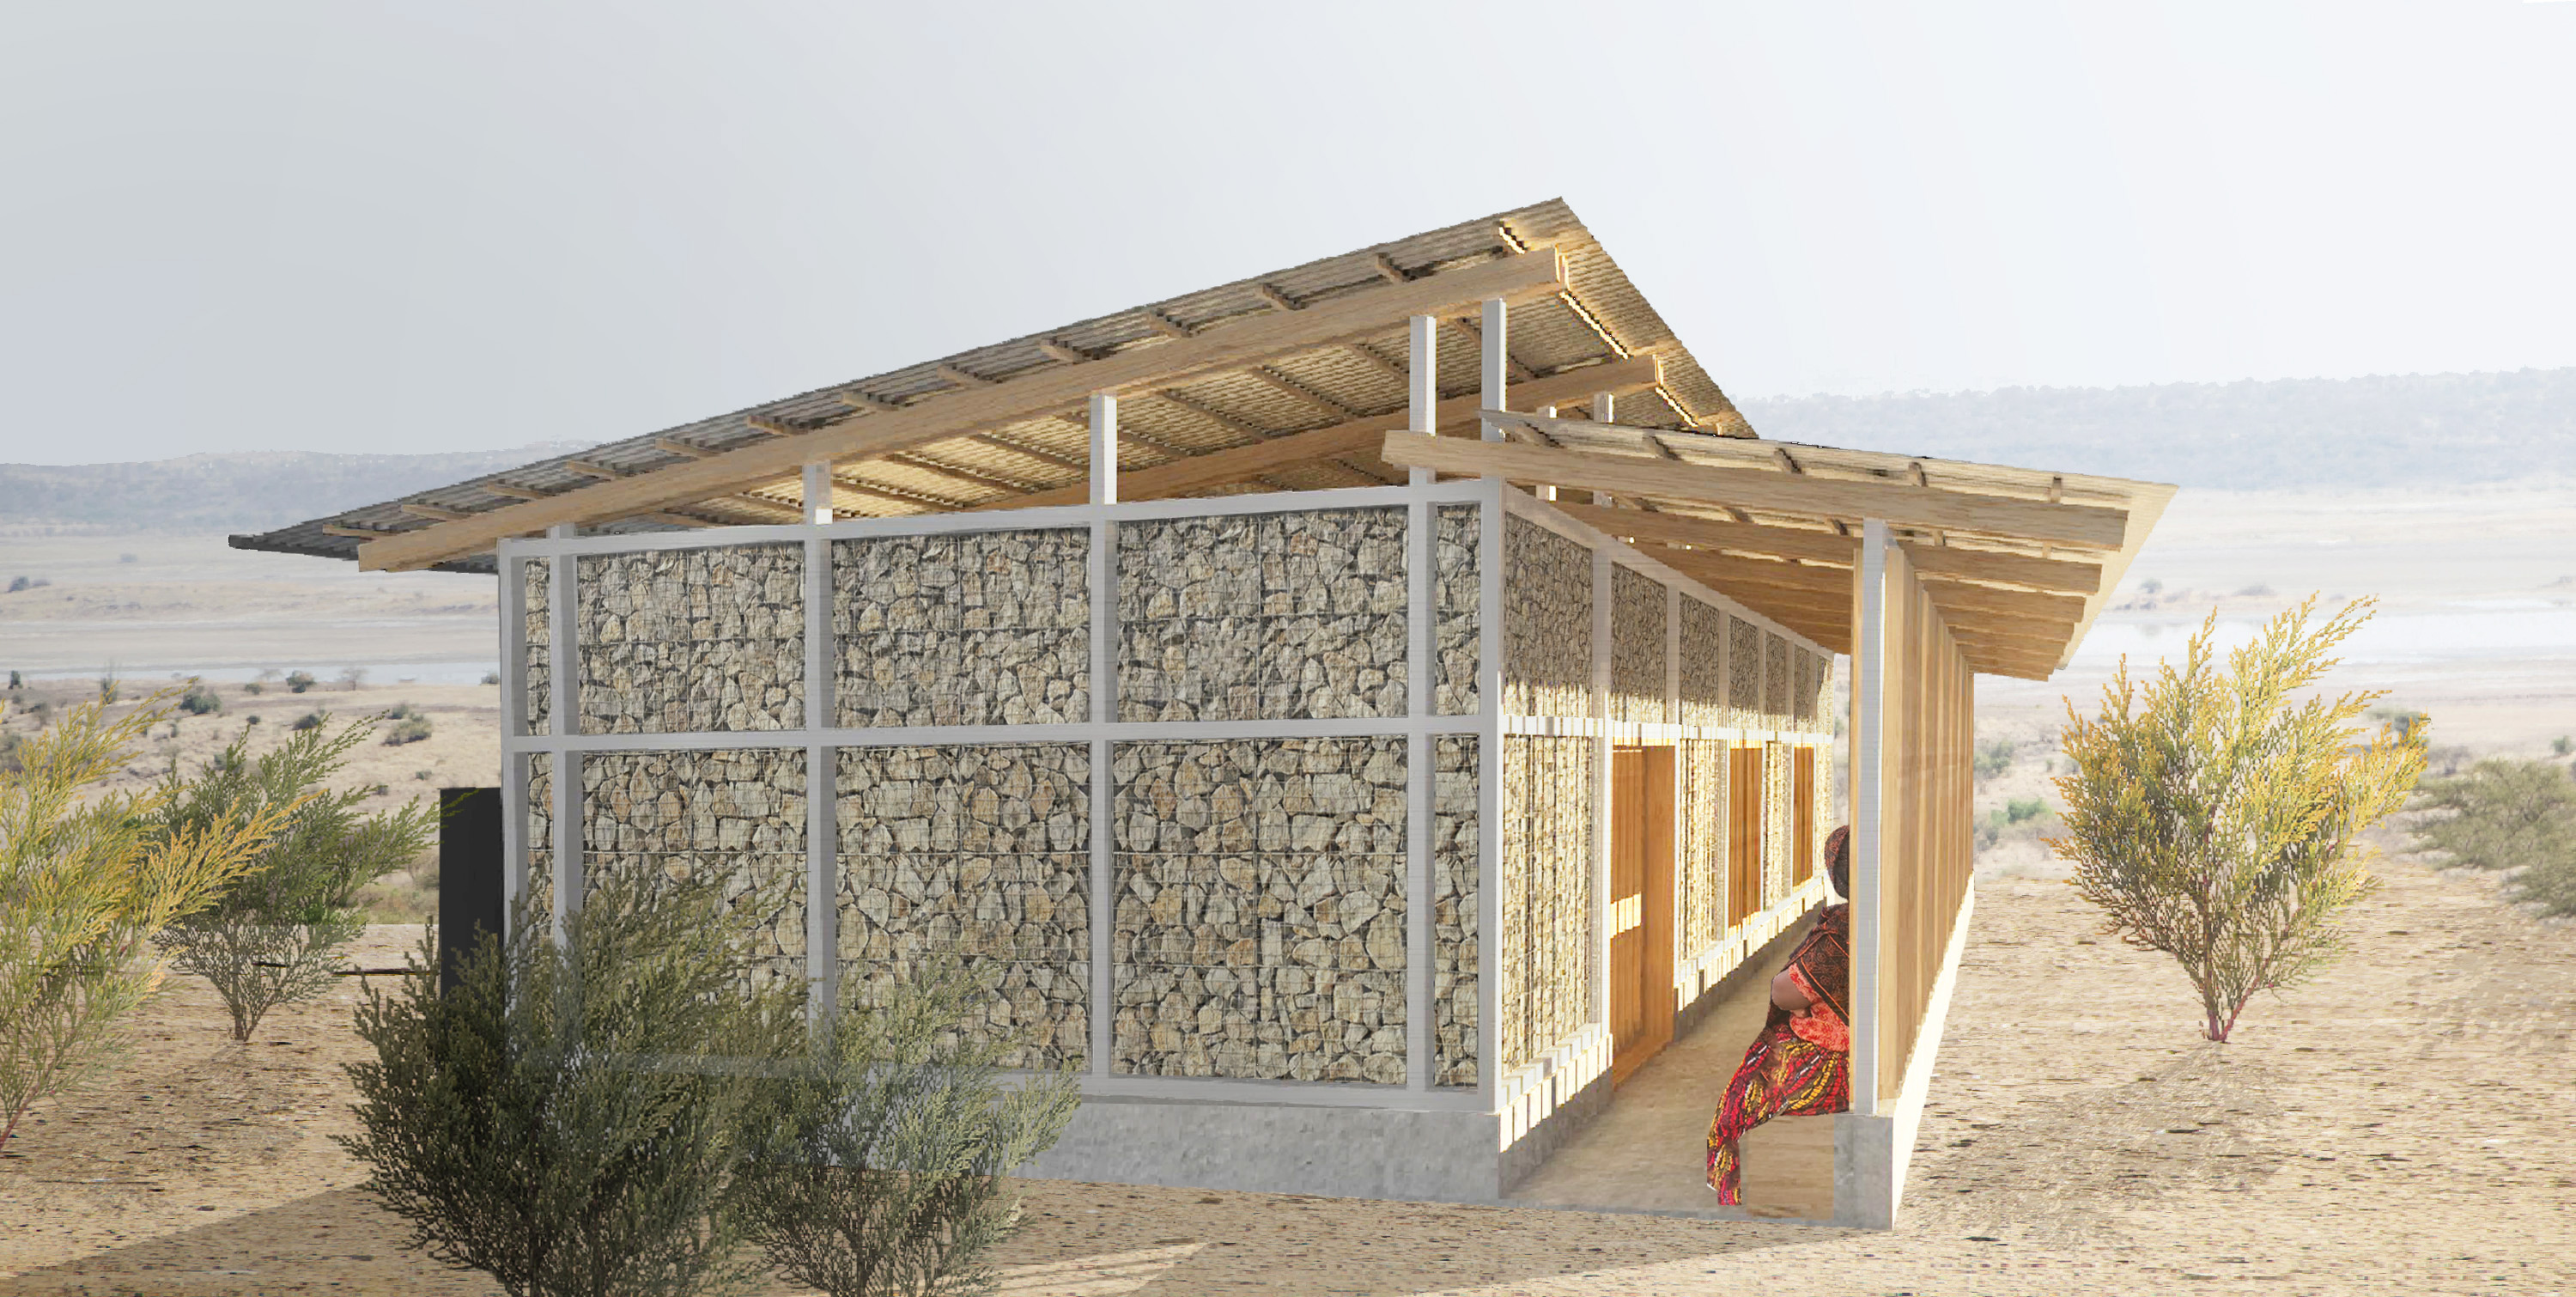 Magadi Classroom Render 2 - Outside Deta